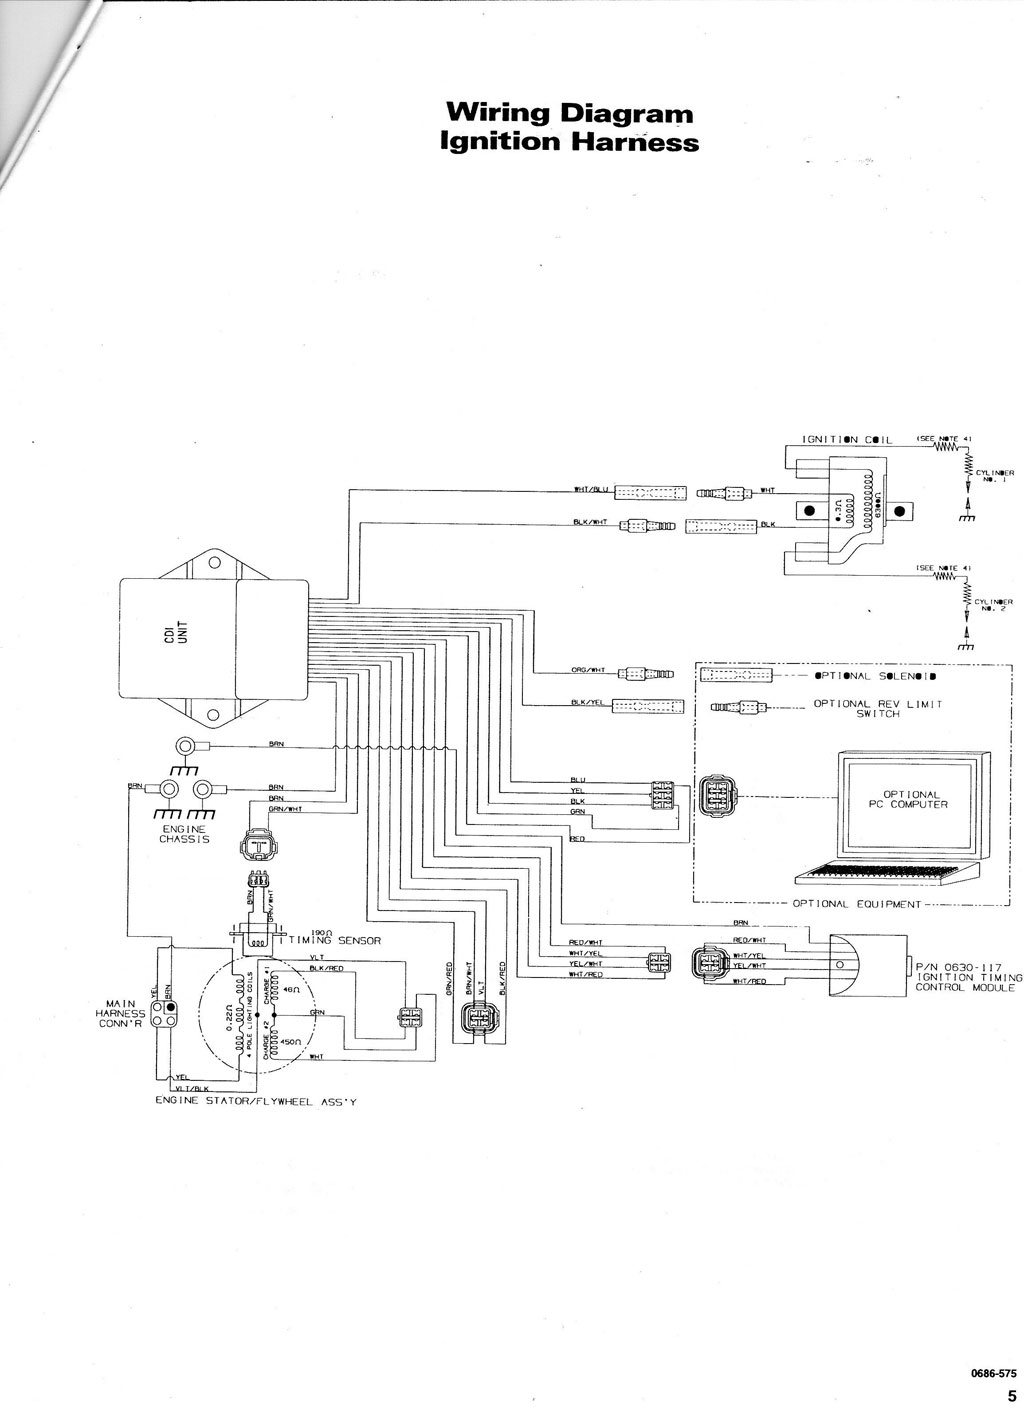 1990 arctic cat wiring diagram